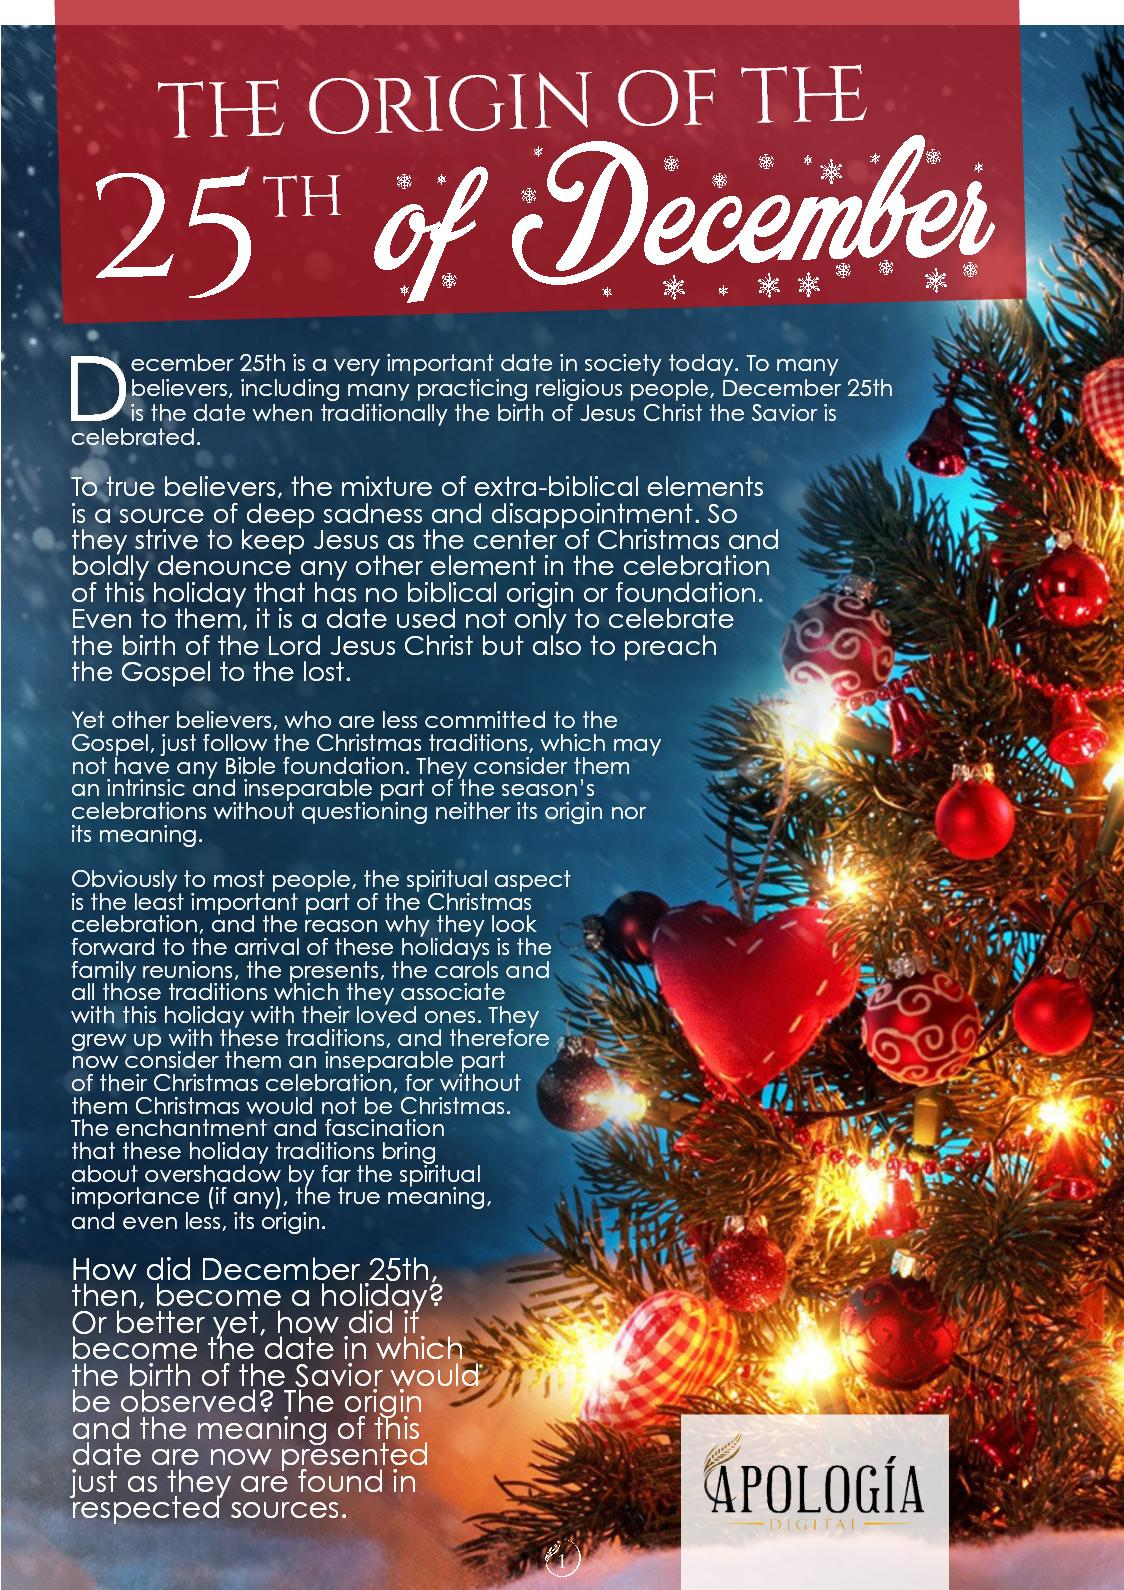 Origin Of Christmas.Calameo The Origin Of The 25th Of December